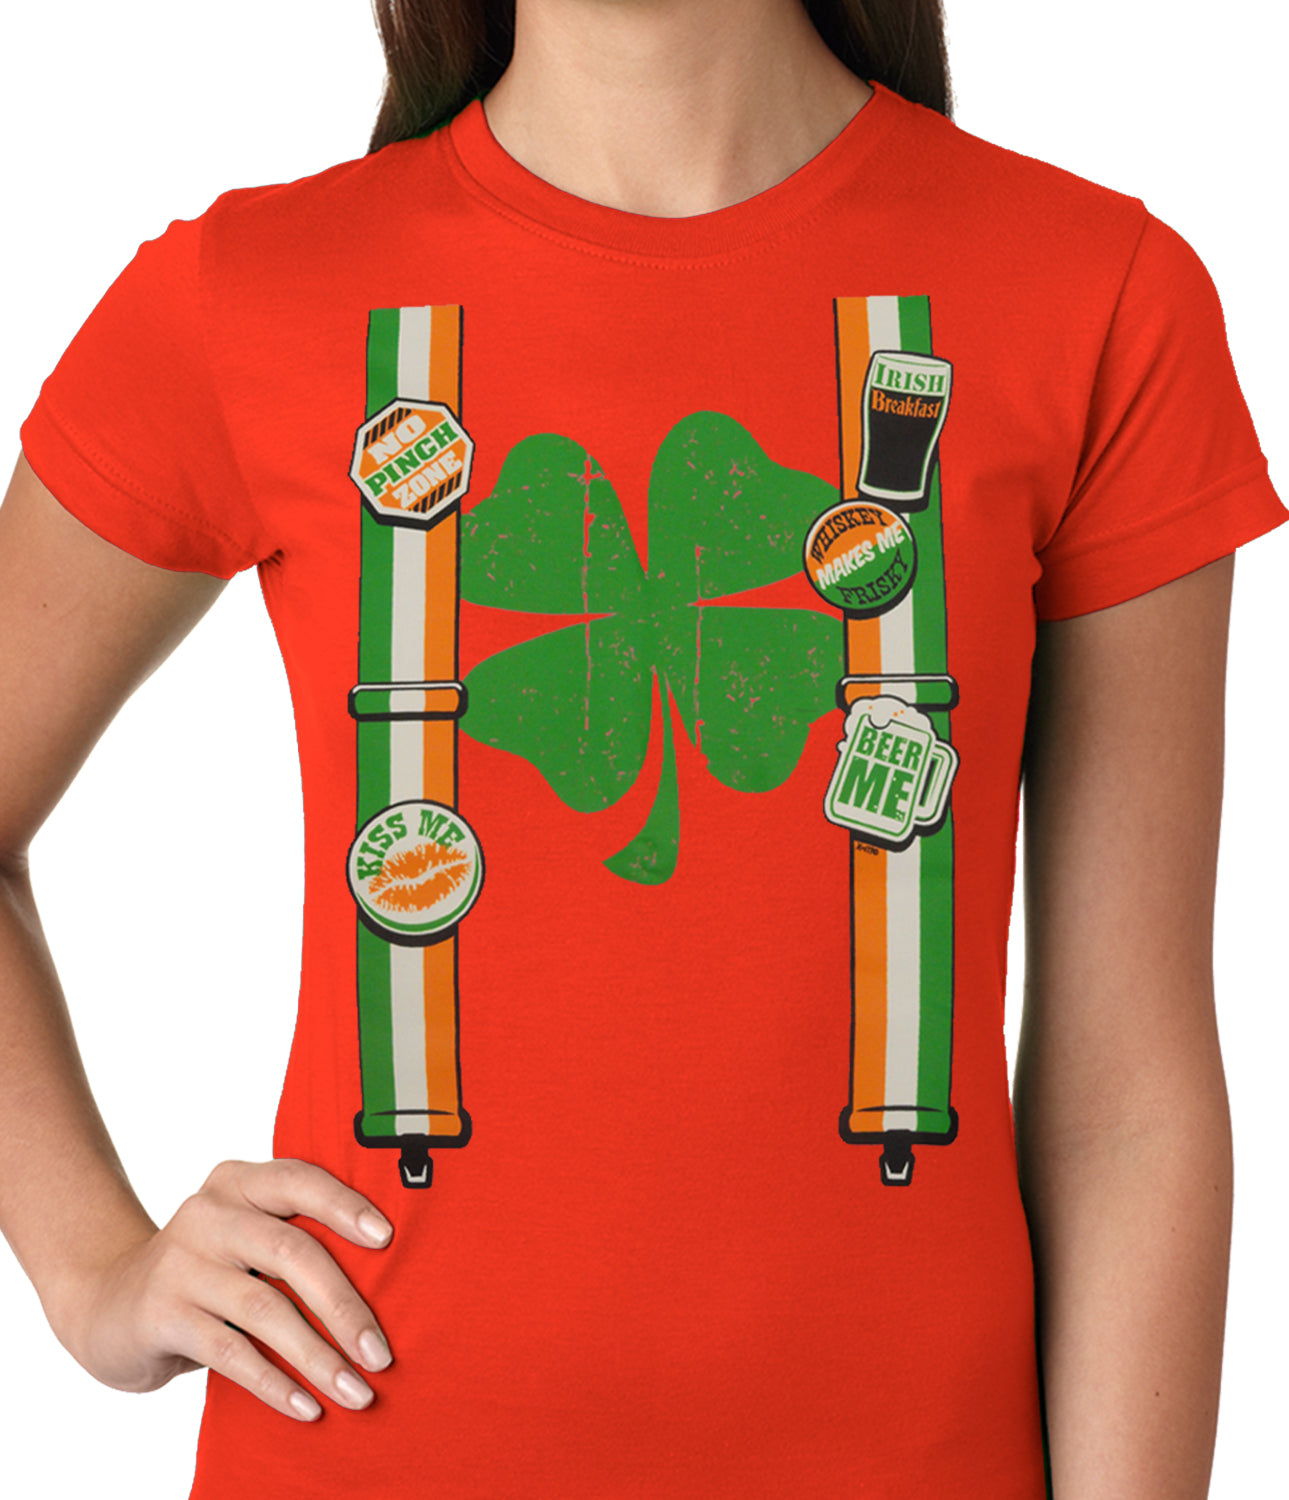 Suspenders with Shamrock Irish Costume Girls T-shirt